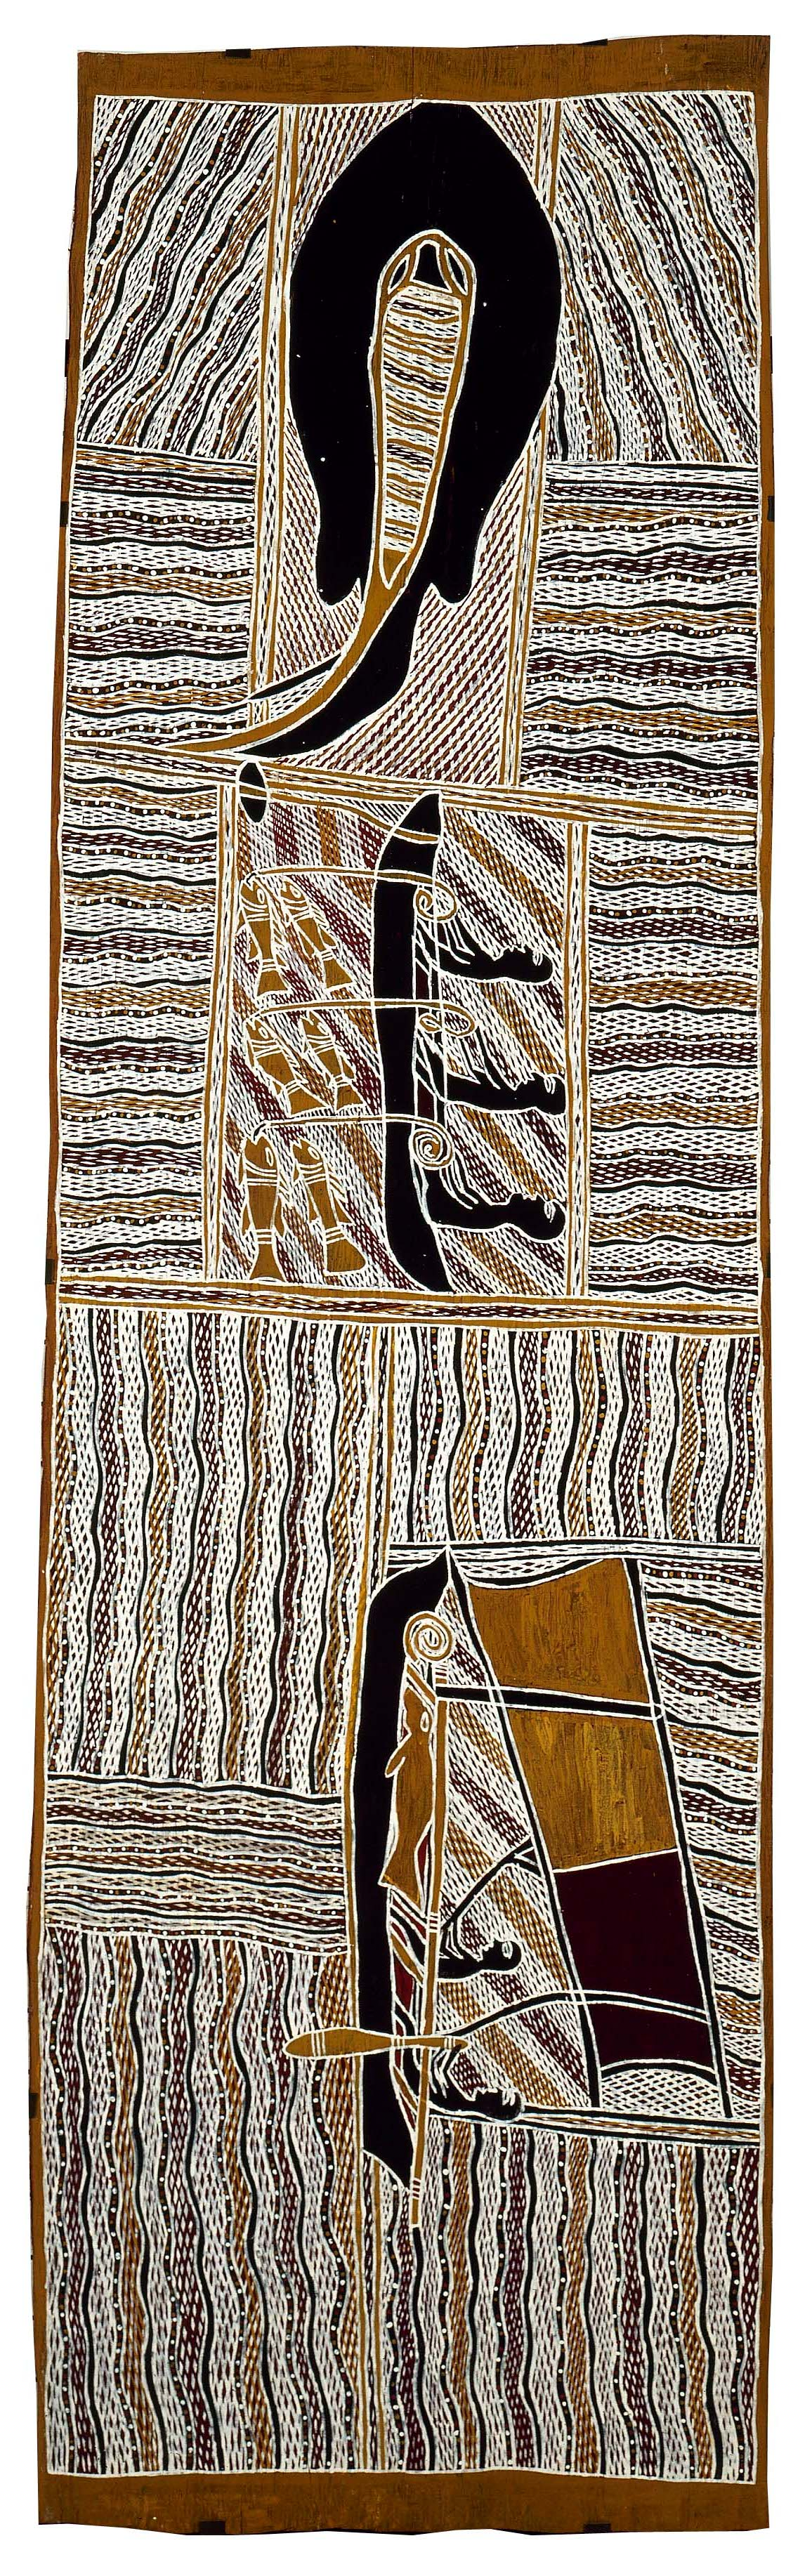 Contemporary Madarrpa, Djambawa Marawili AM, ANMM Collection, (Purchased with the assistance of Stephen Grant and Bridget Pirrie and the GRANTPIRRIE Gallery, reproduced courtesy of the artist and Buku-Larrŋgay Mulka Art Centre)